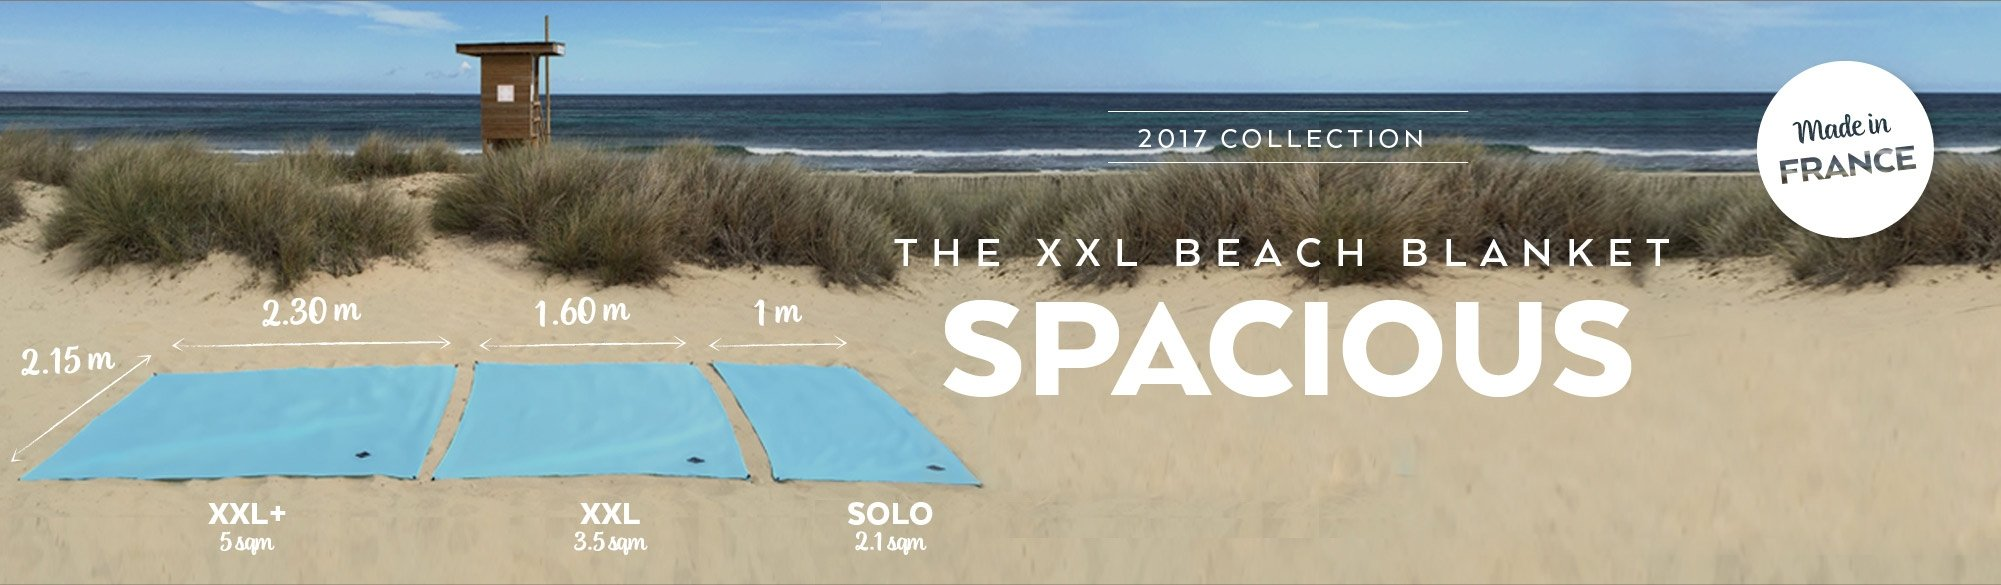 The spacious beach blanket